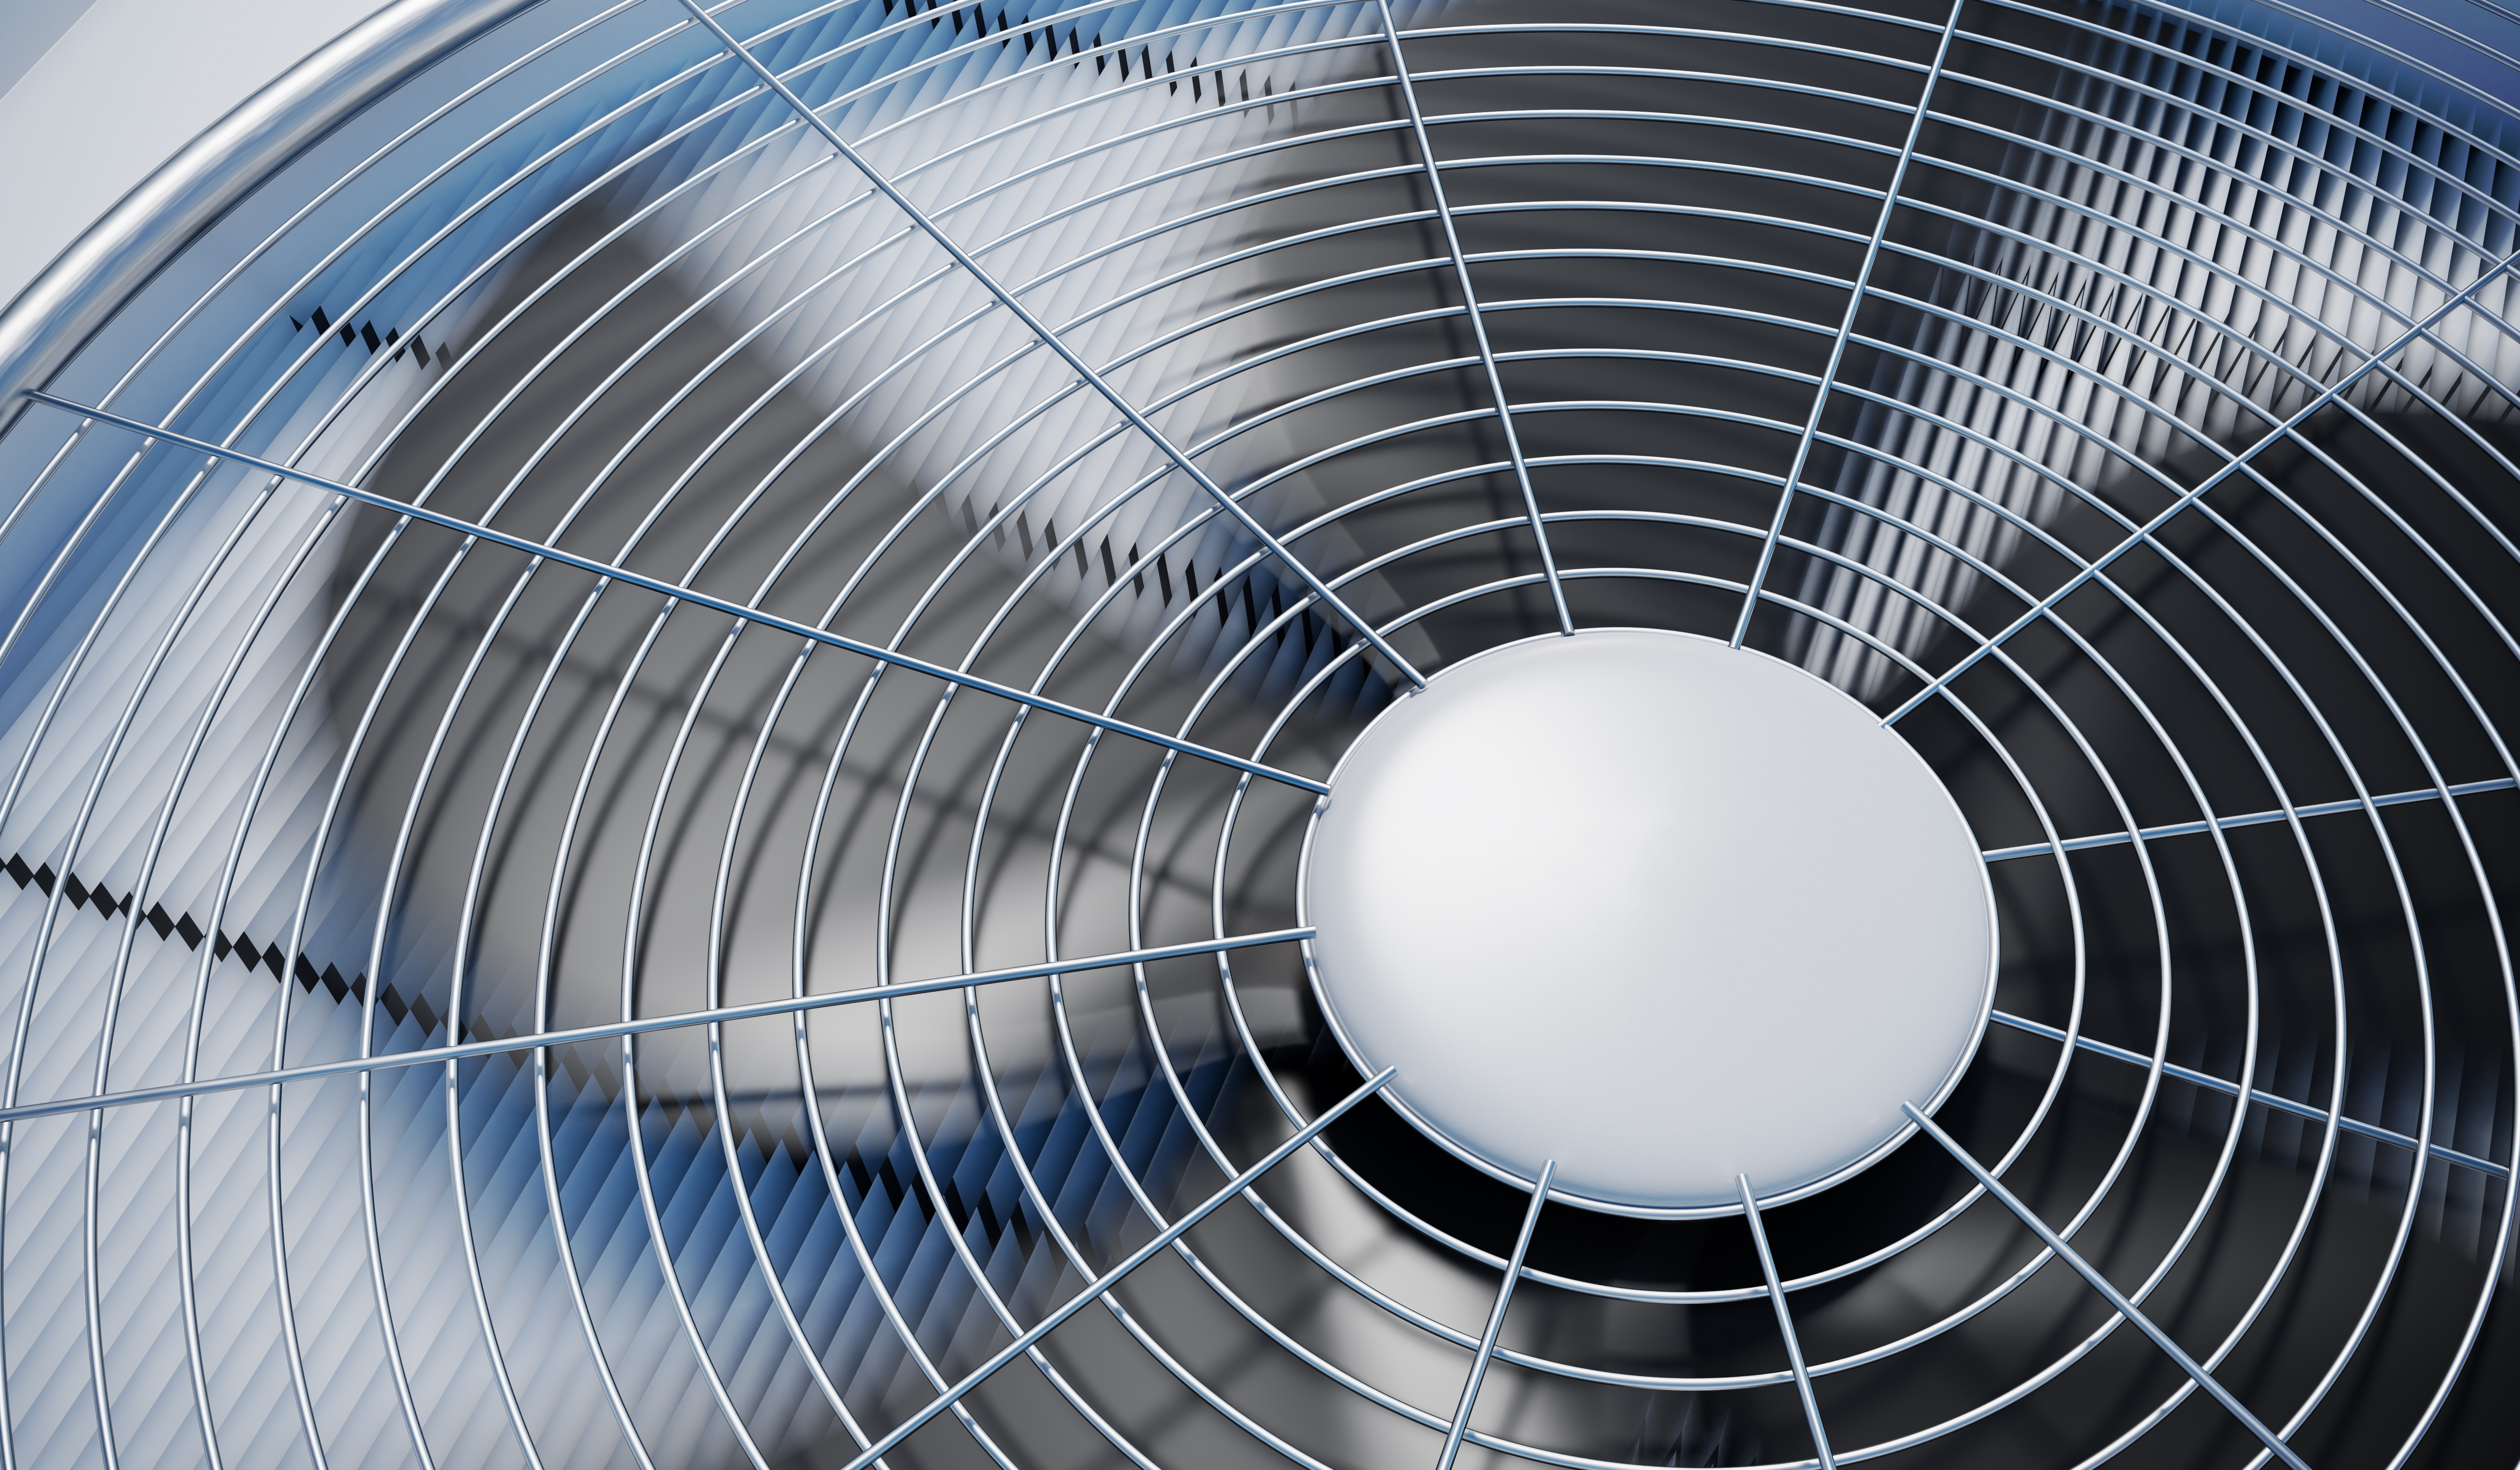 Fans may be safe to use during heat waves, study suggests - STAT